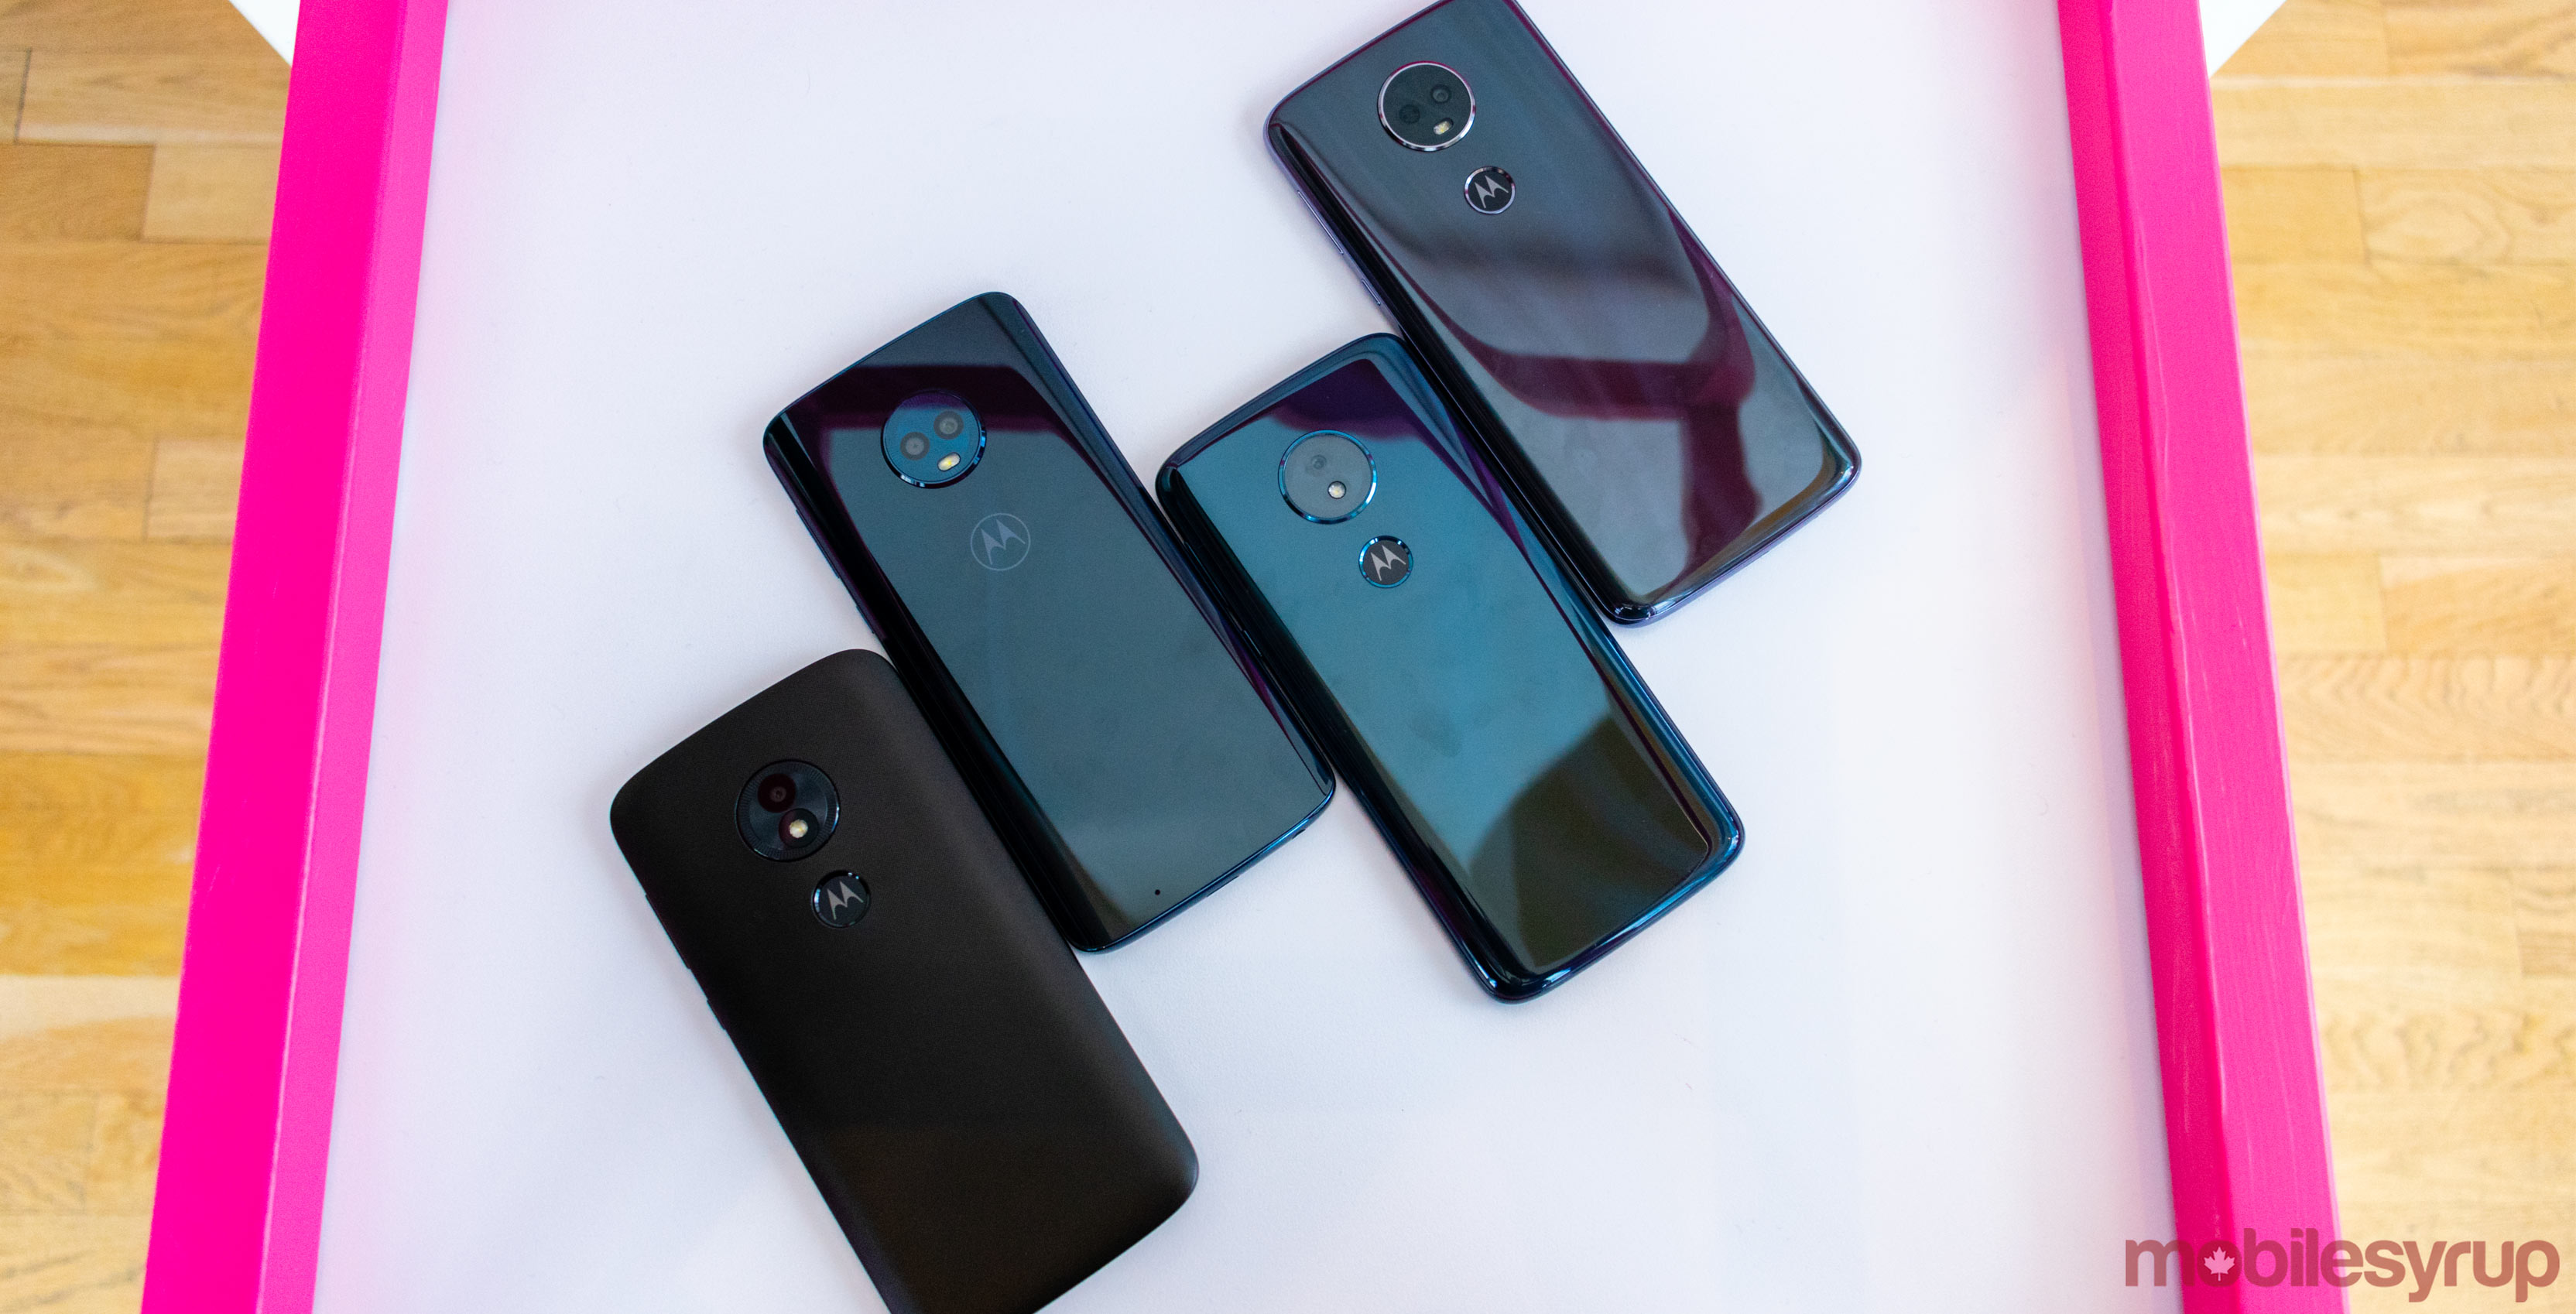 Moto G6, G6 Play, E5 Plus and E5 Play Hands-on: Moving the